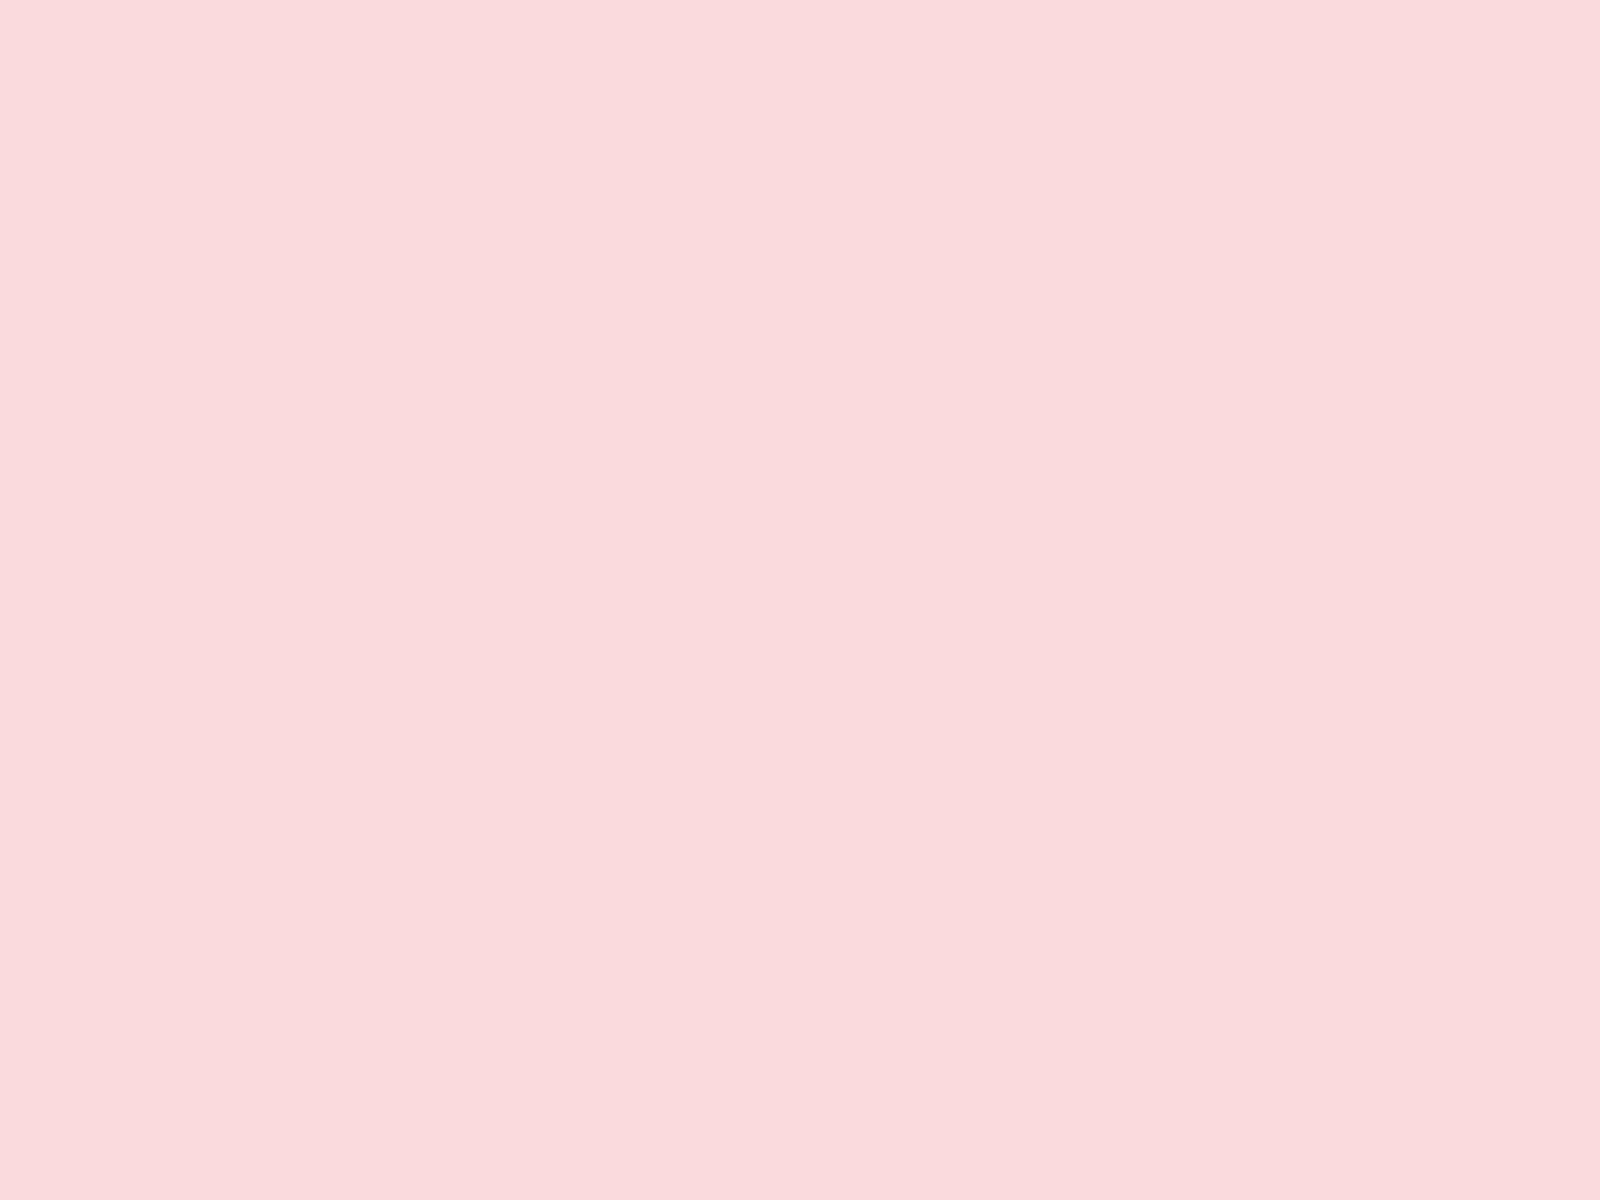 1600x1200 Pale Pink Solid Color Background